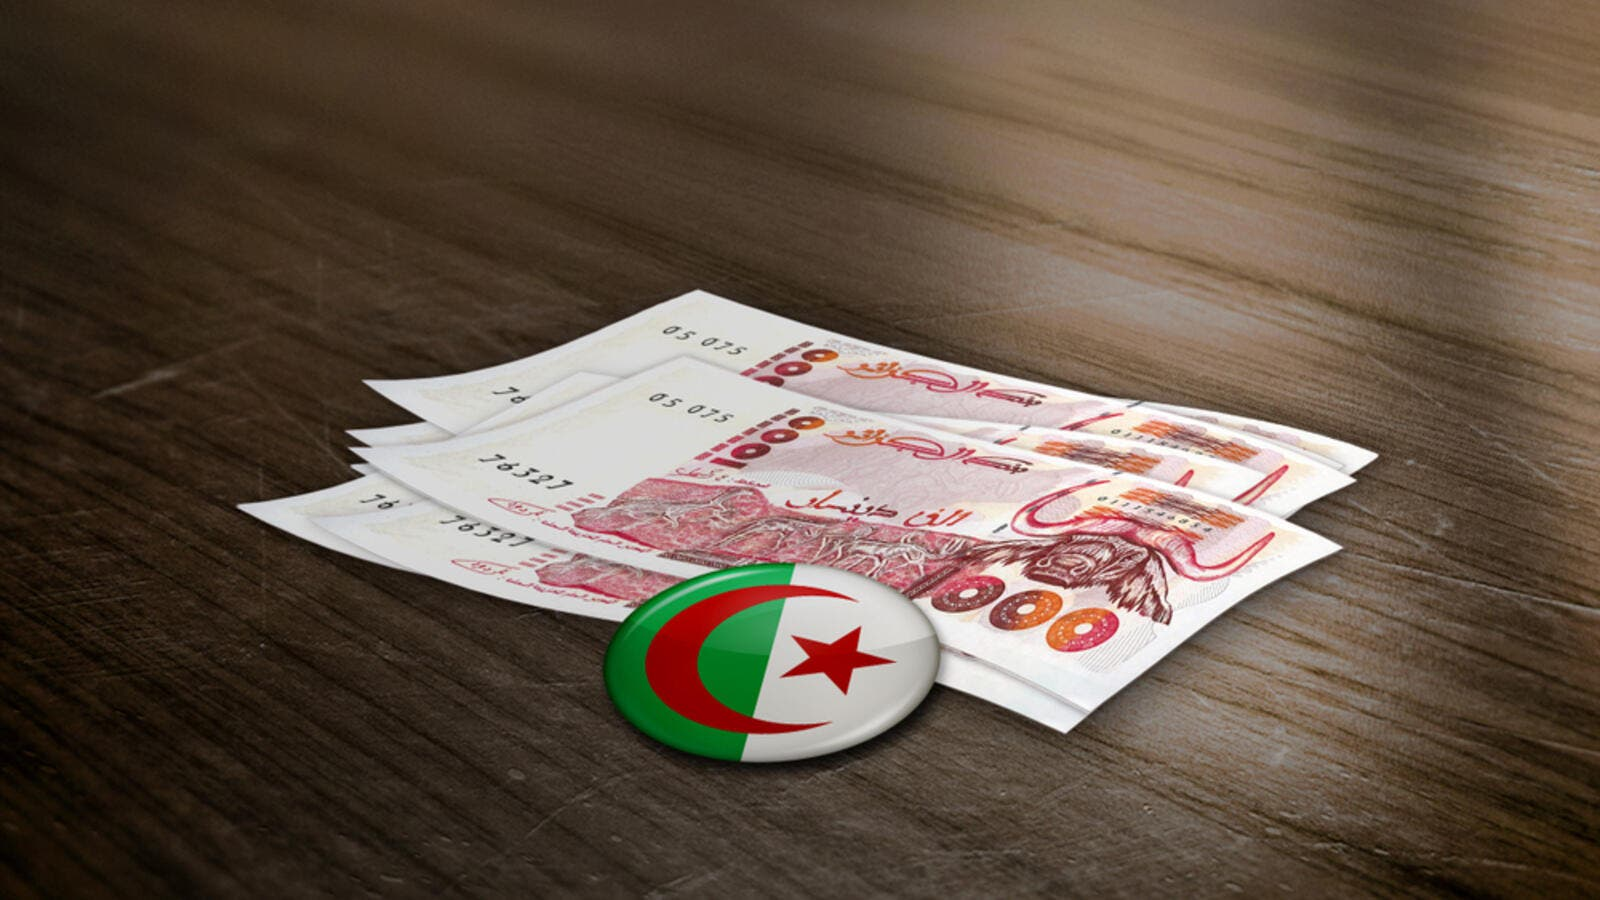 Algeria has to do its best to avoid economic instability.